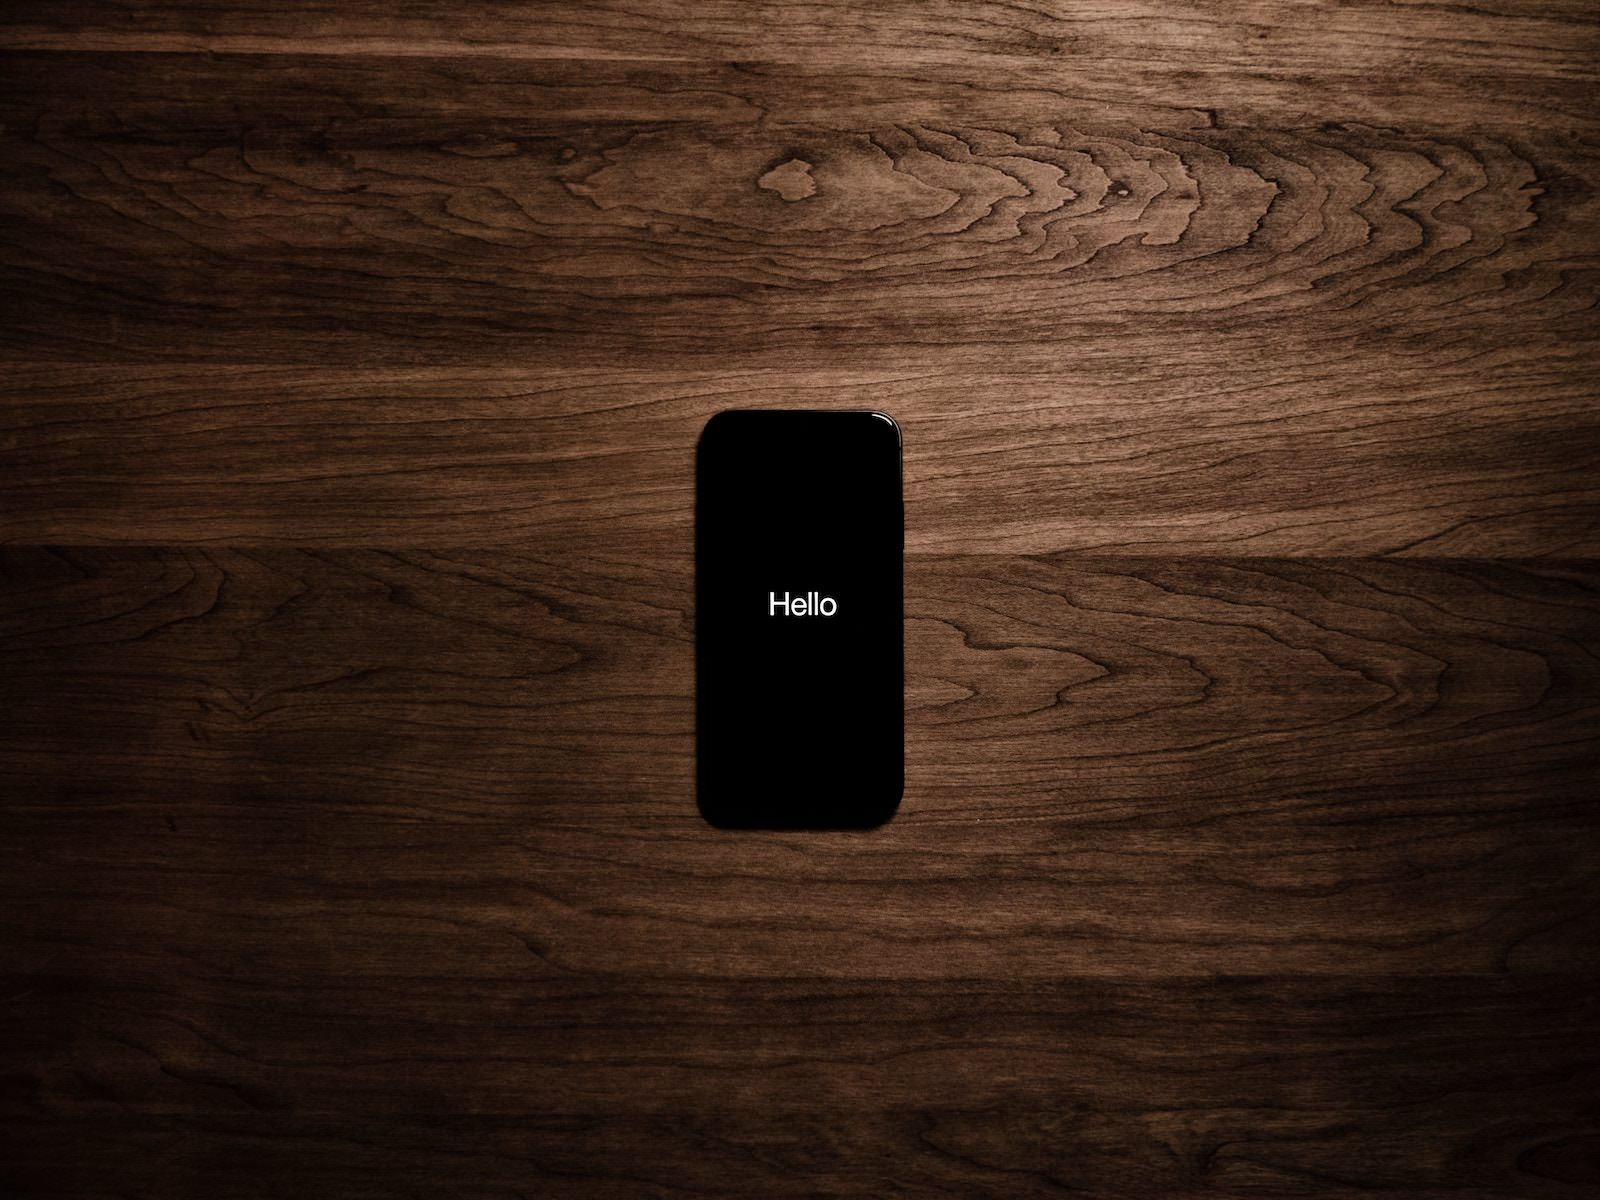 Tyler lastovich lmpuKSf2uQE unsplash hello iphone